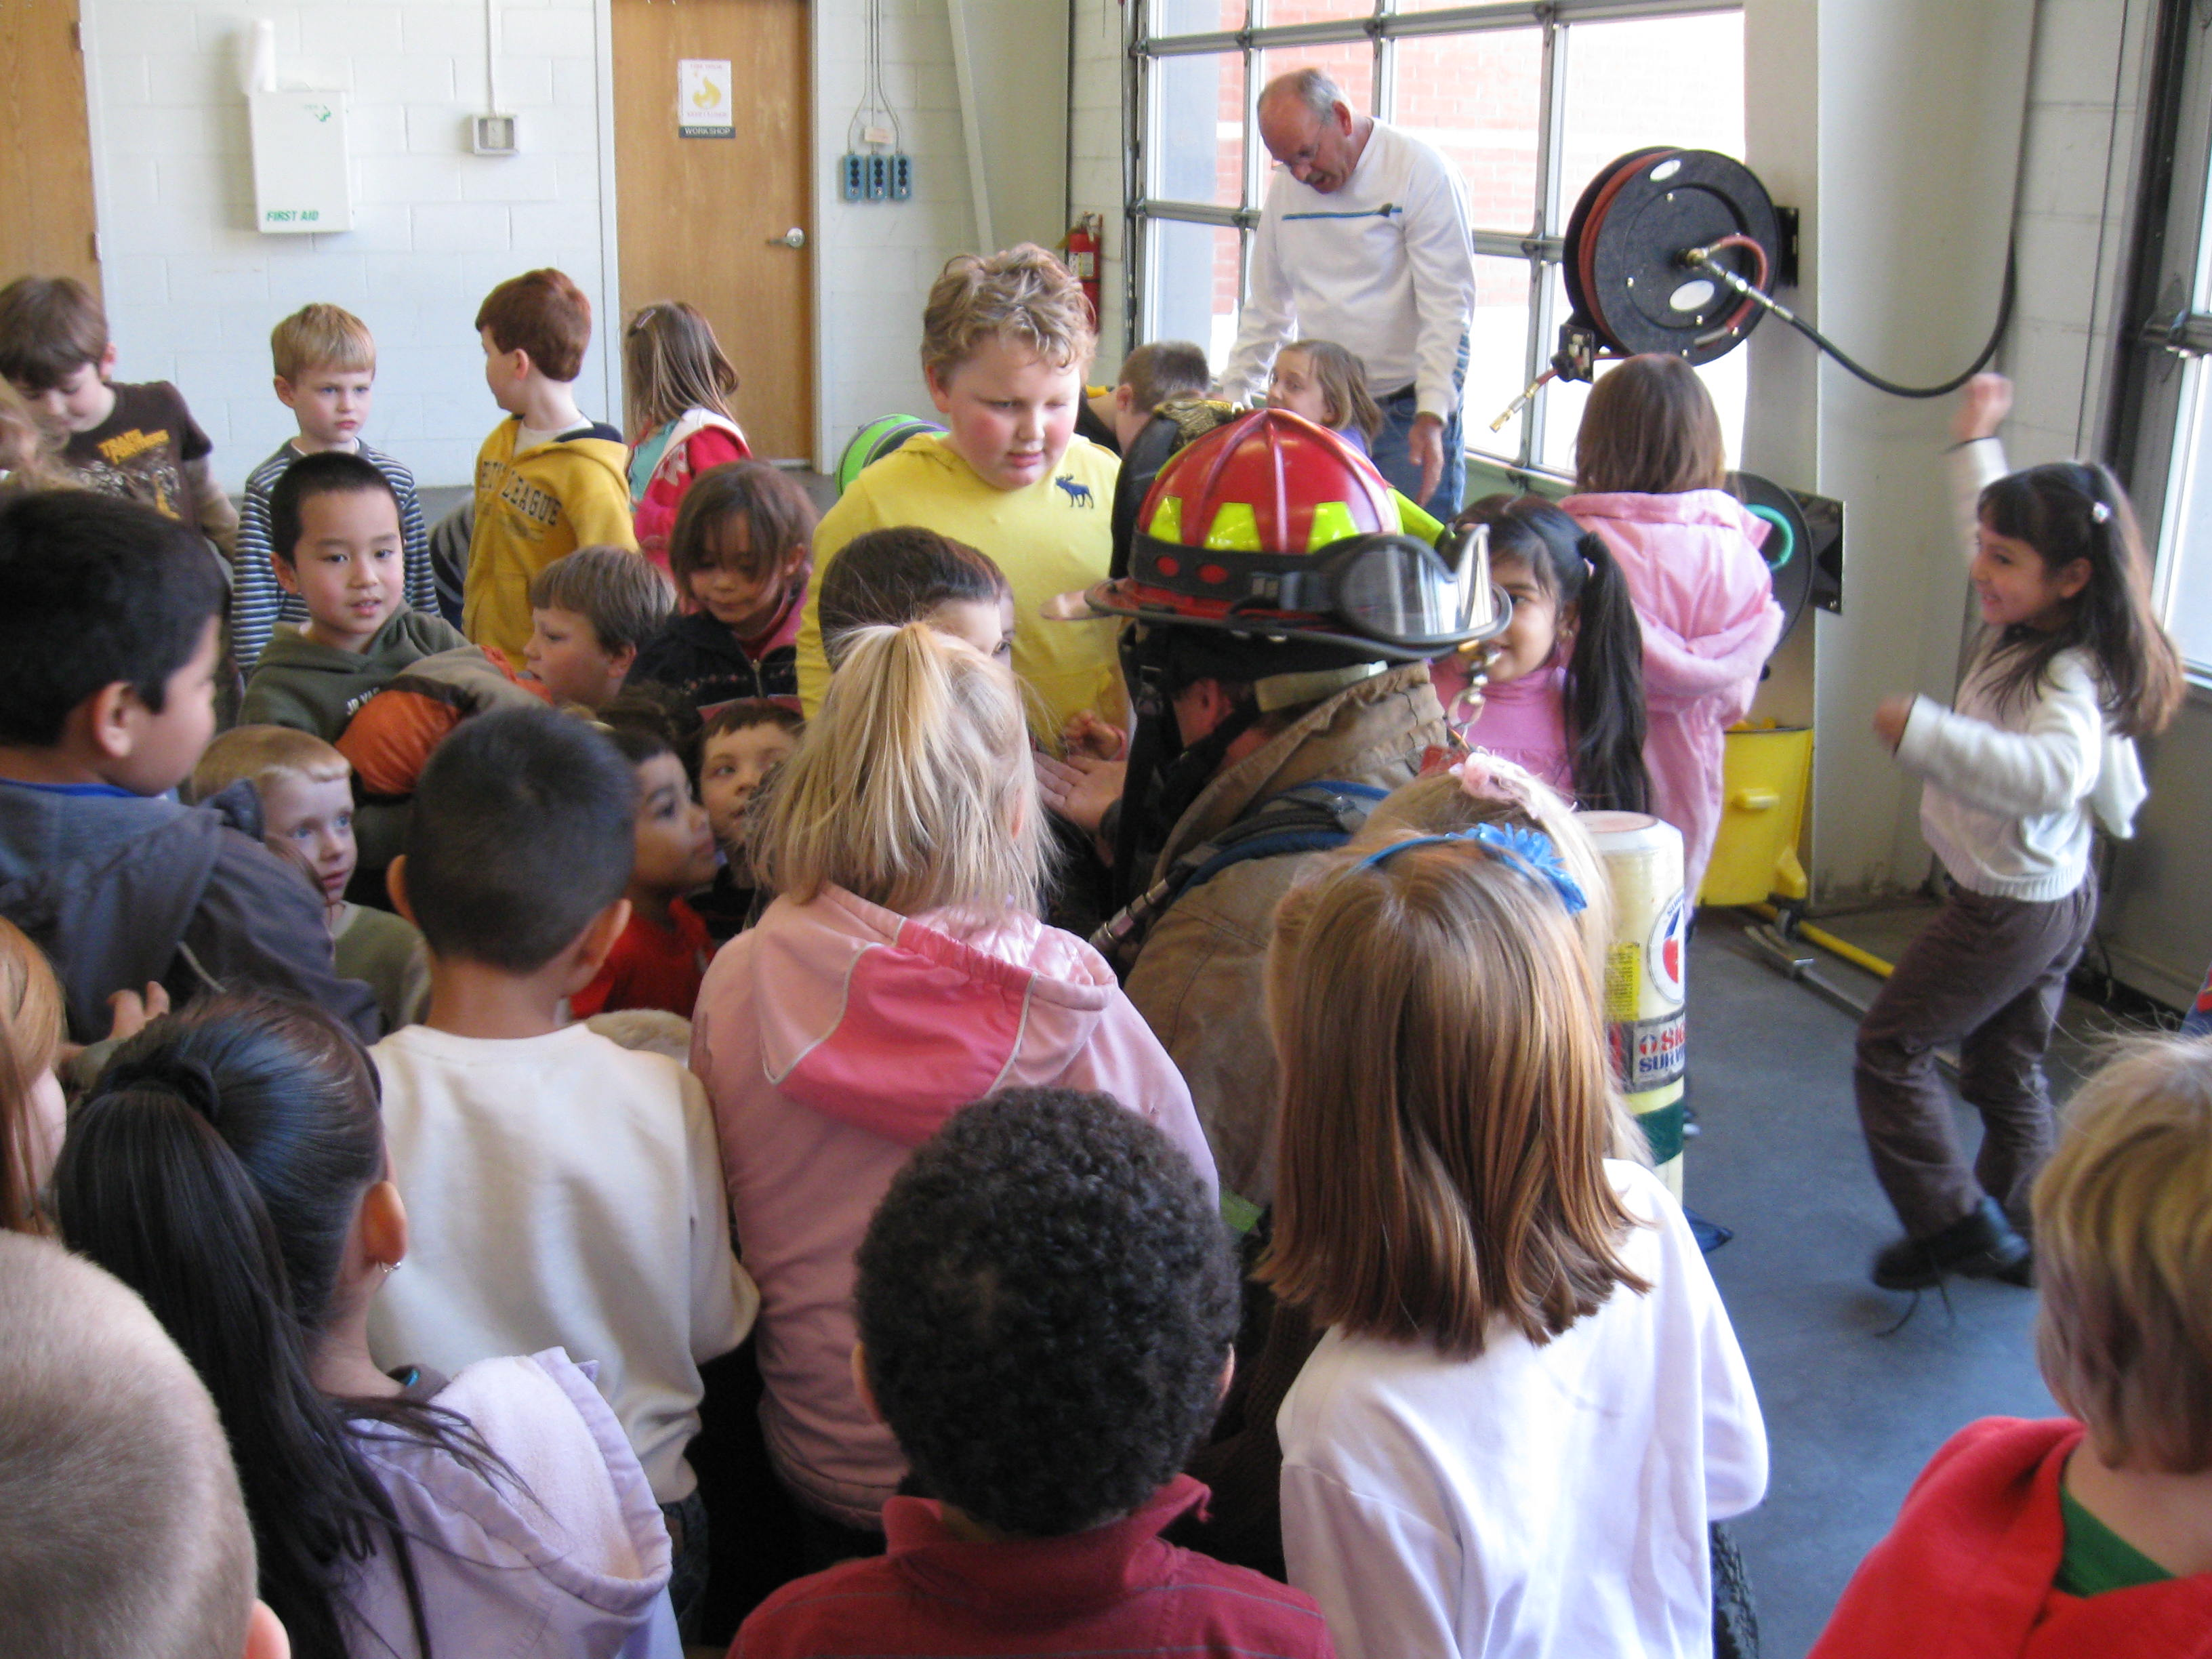 Life Safety Education with kids in class